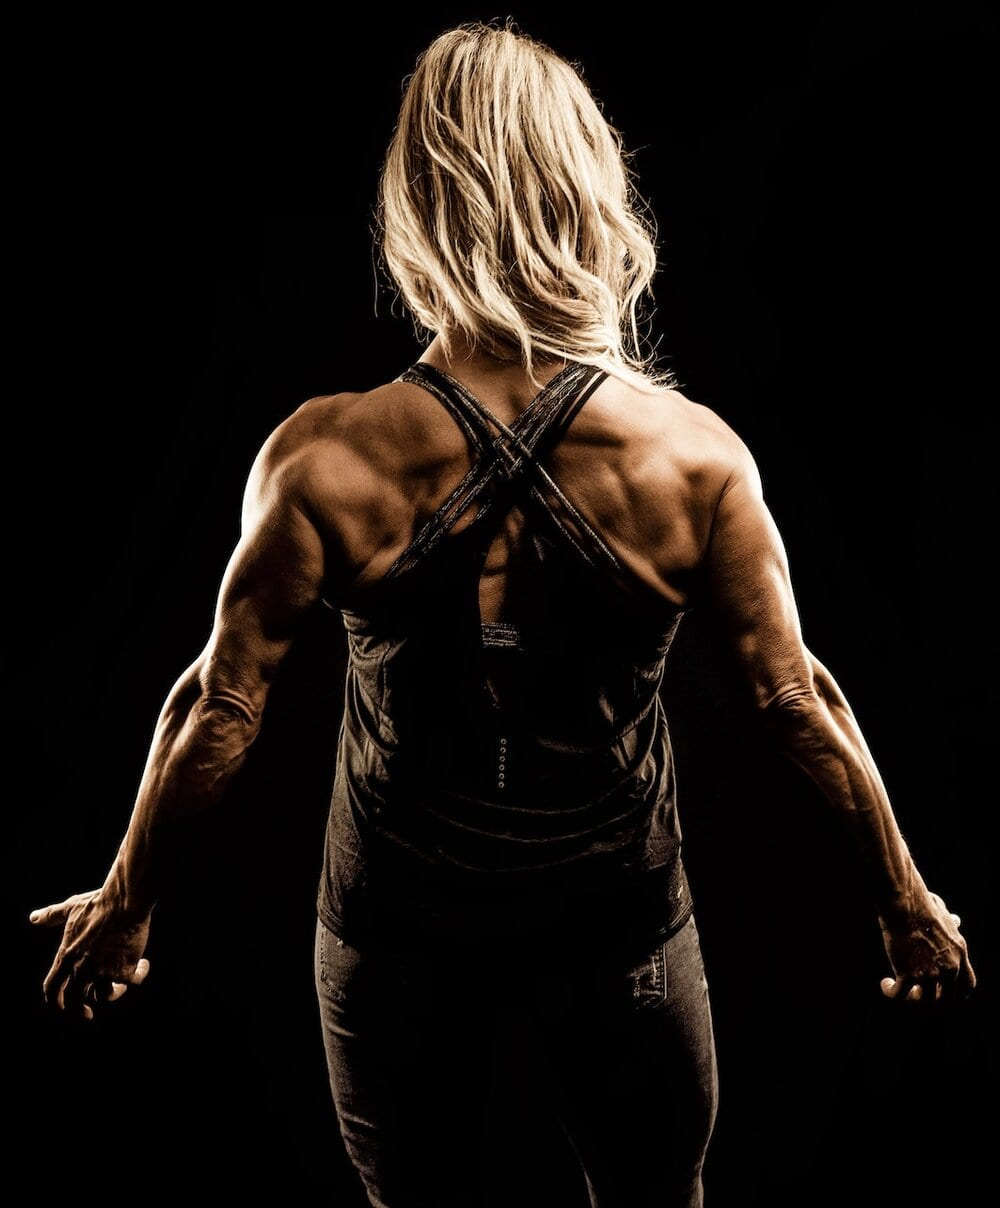 woman with great muscle tone